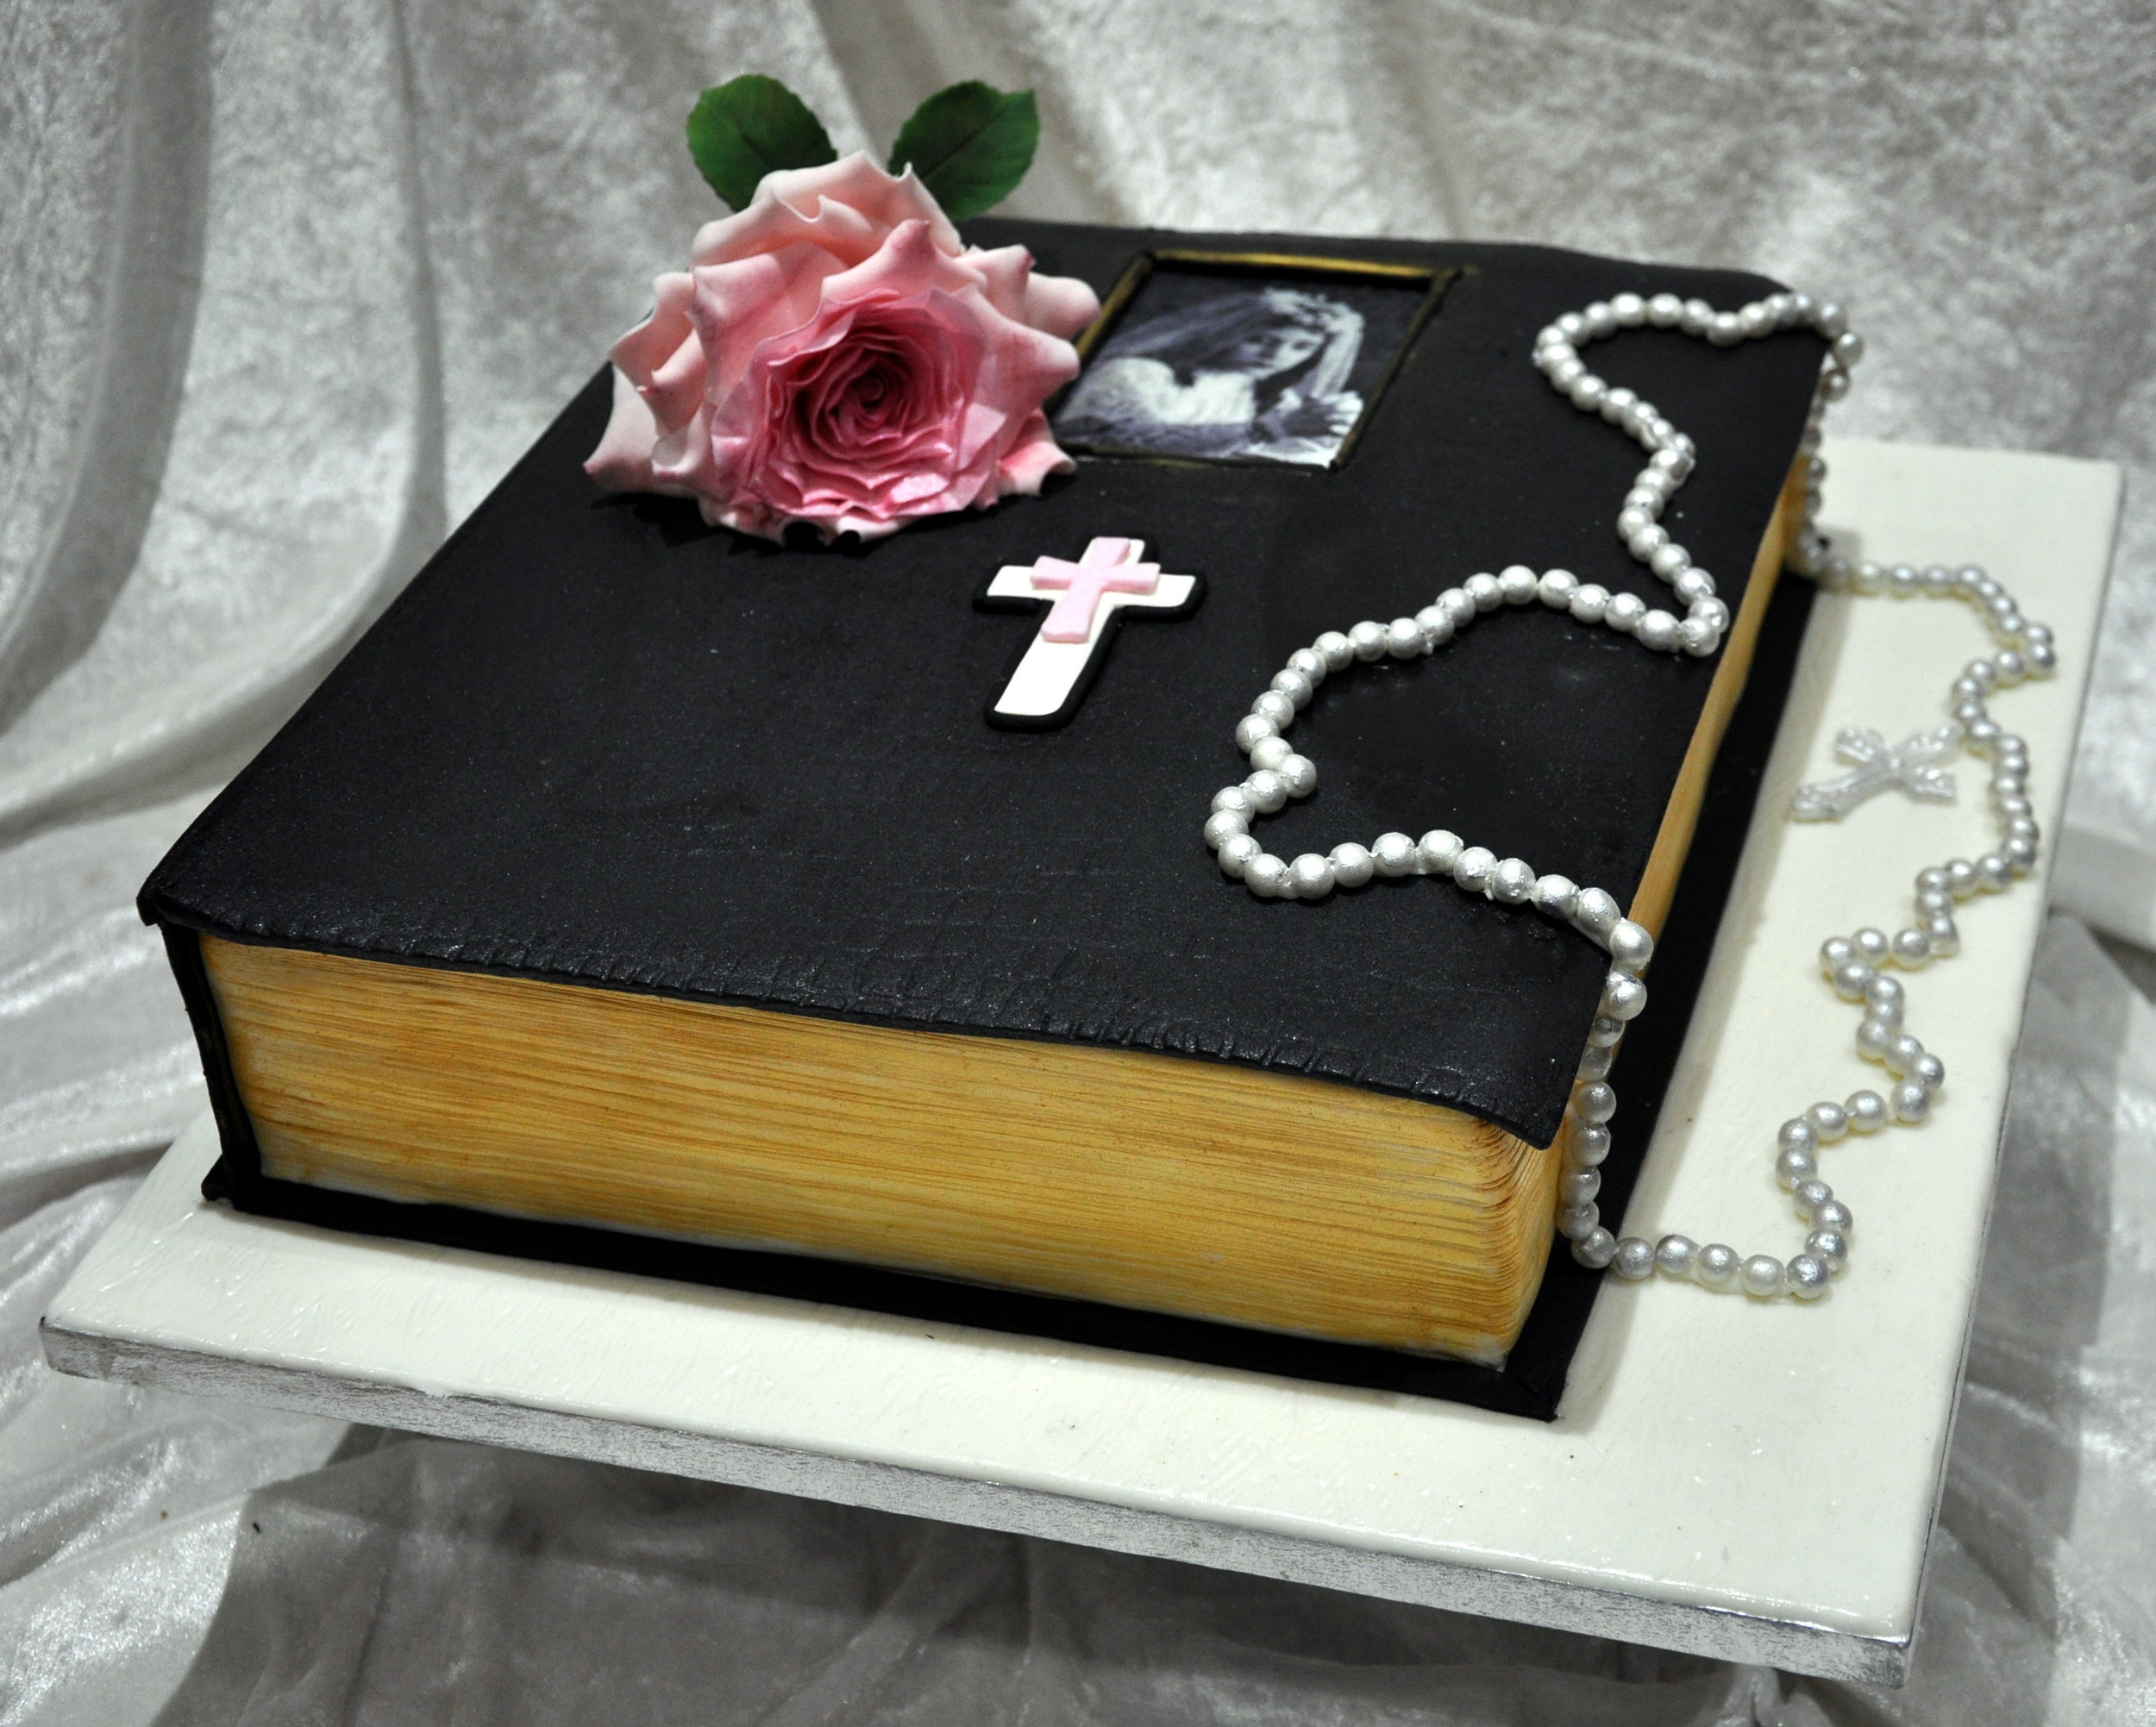 - Beautiful bible birthday cake made for a nun working at the Vatican, bought by her brother as a surprise.